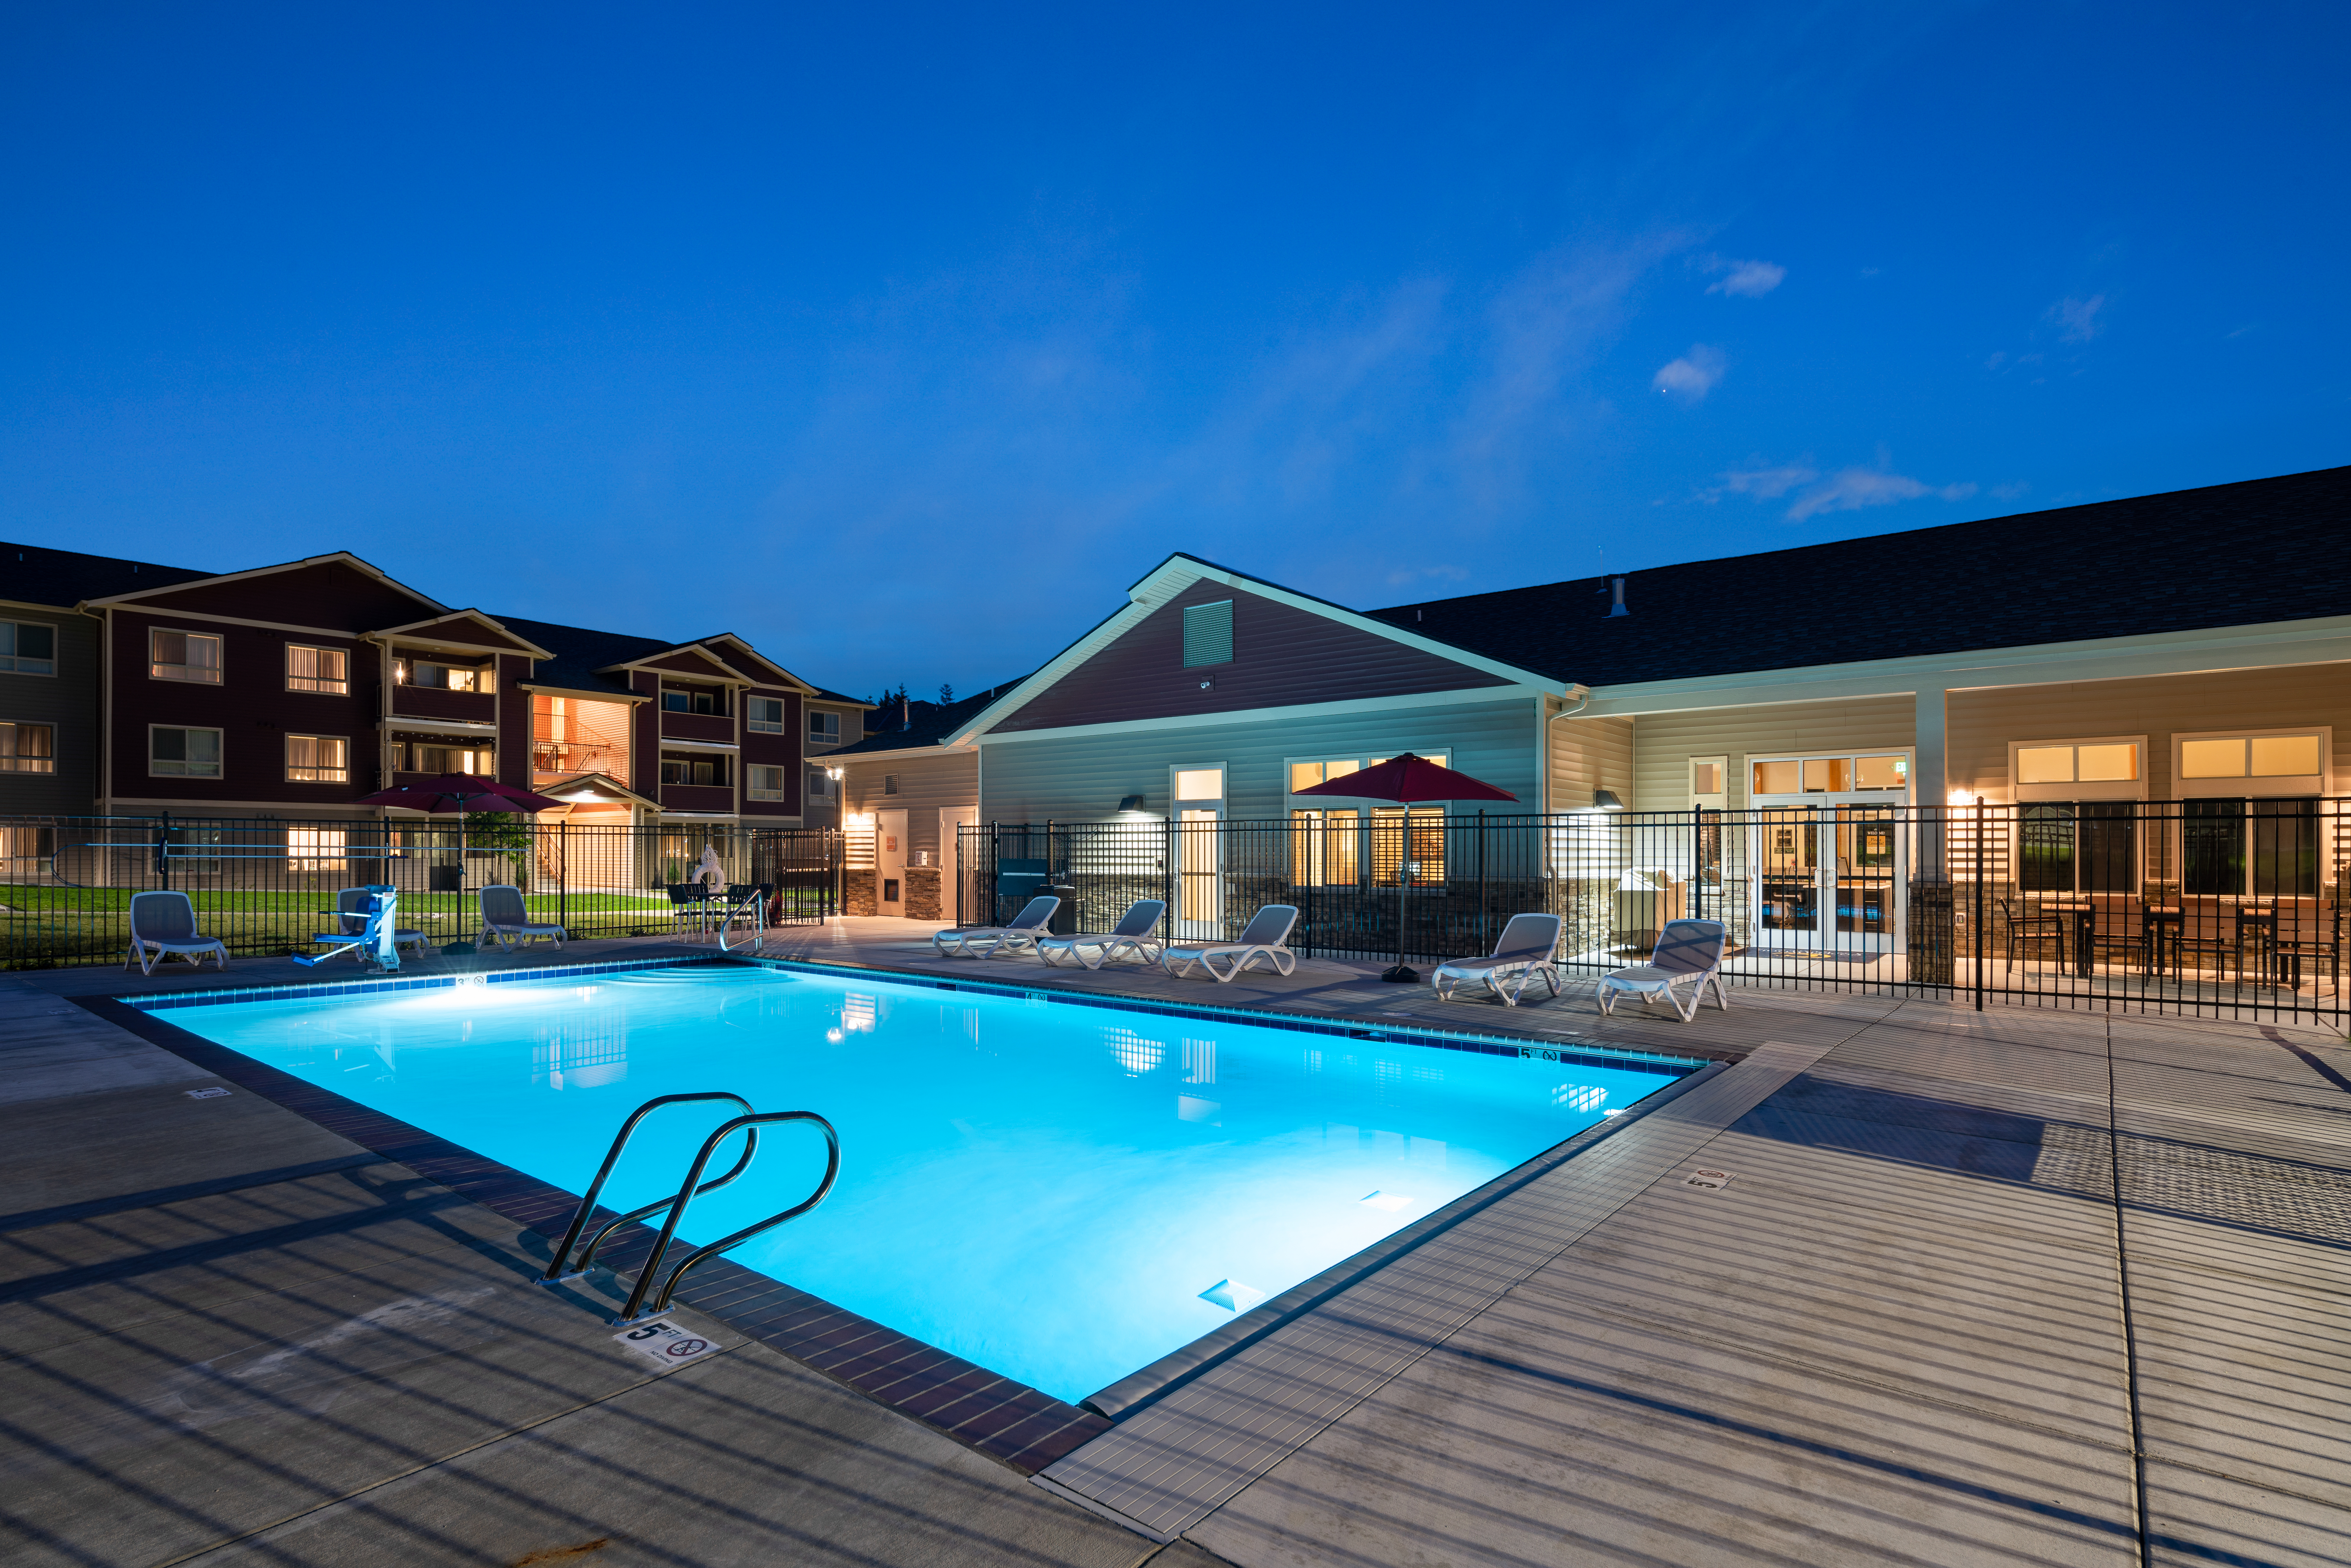 Image of Copper Mountain Apartments in Richland, Washington